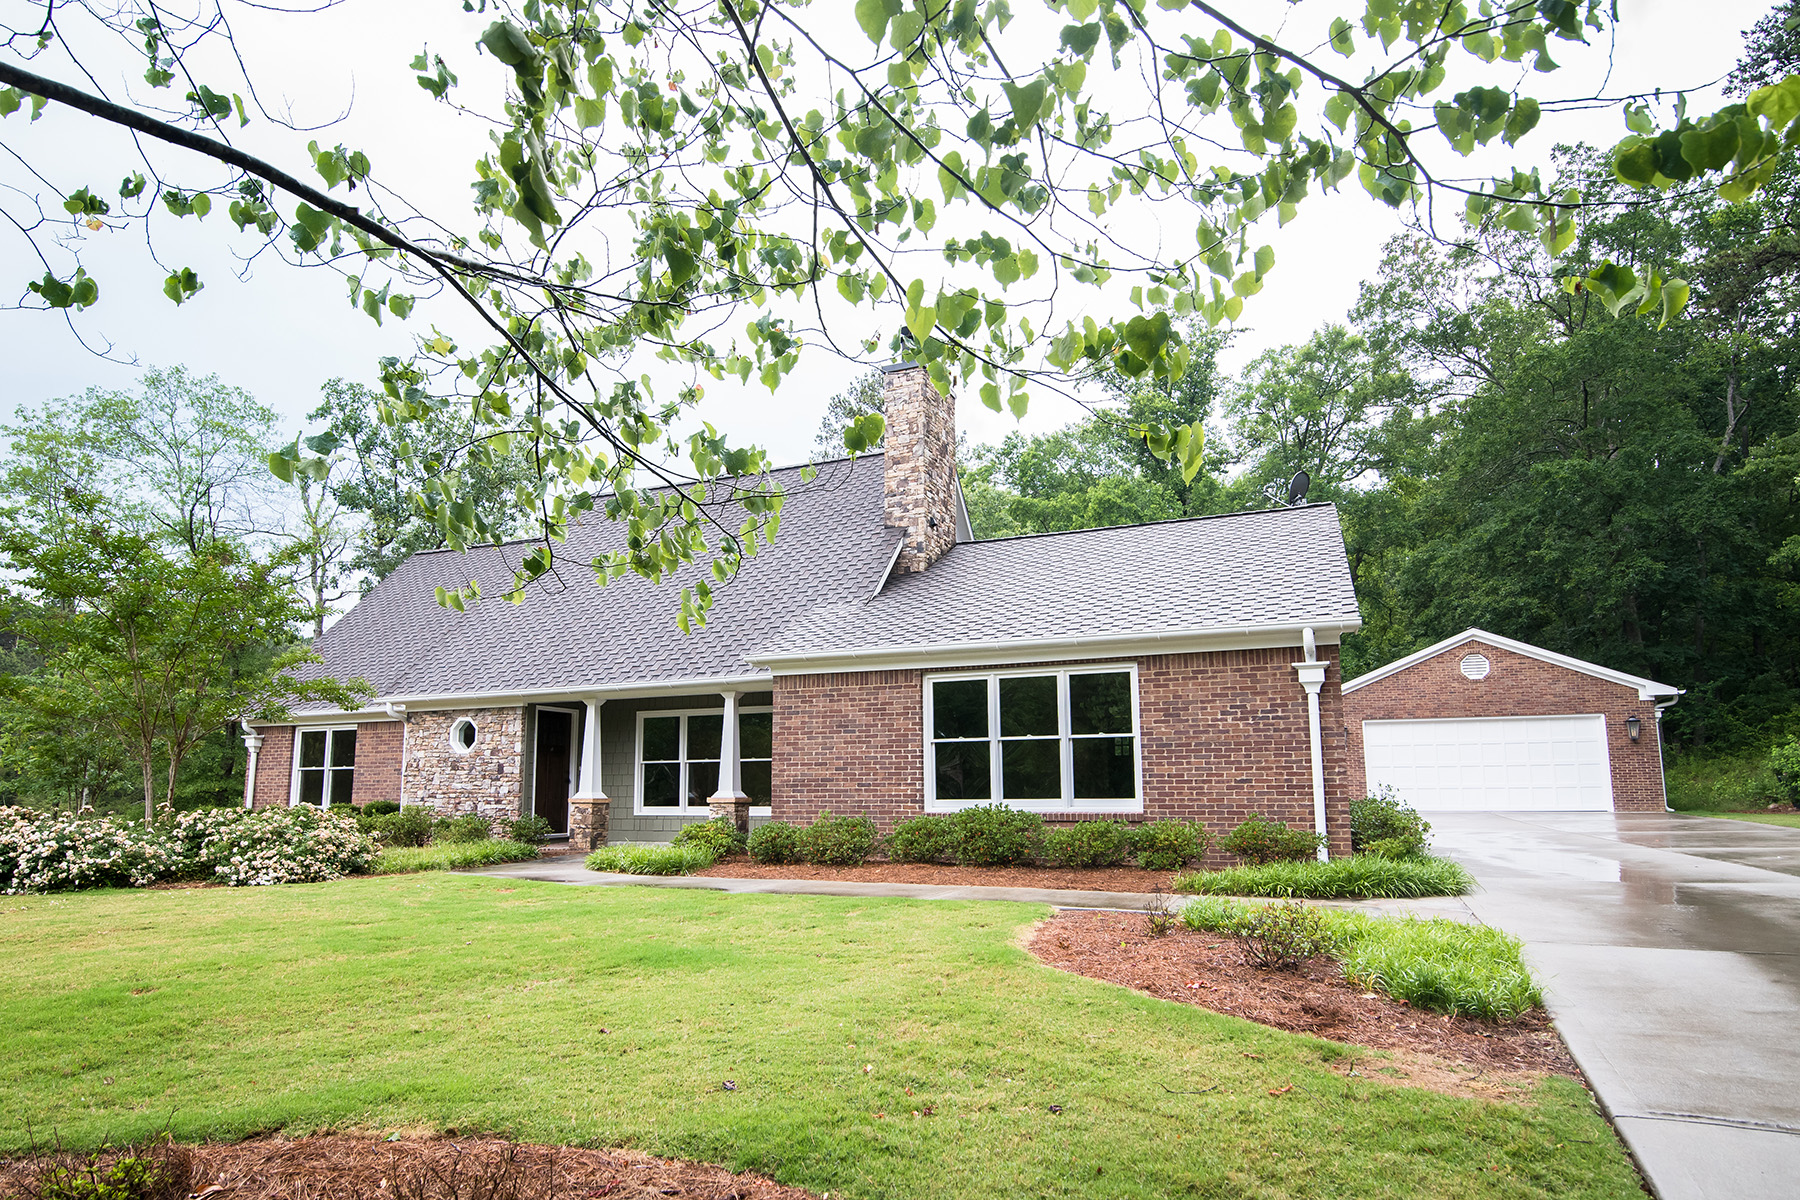 Single Family Homes for Sale at 1985 Craftsman Ranch Renovation 3505 Johnston Road Winston, Georgia 30187 United States